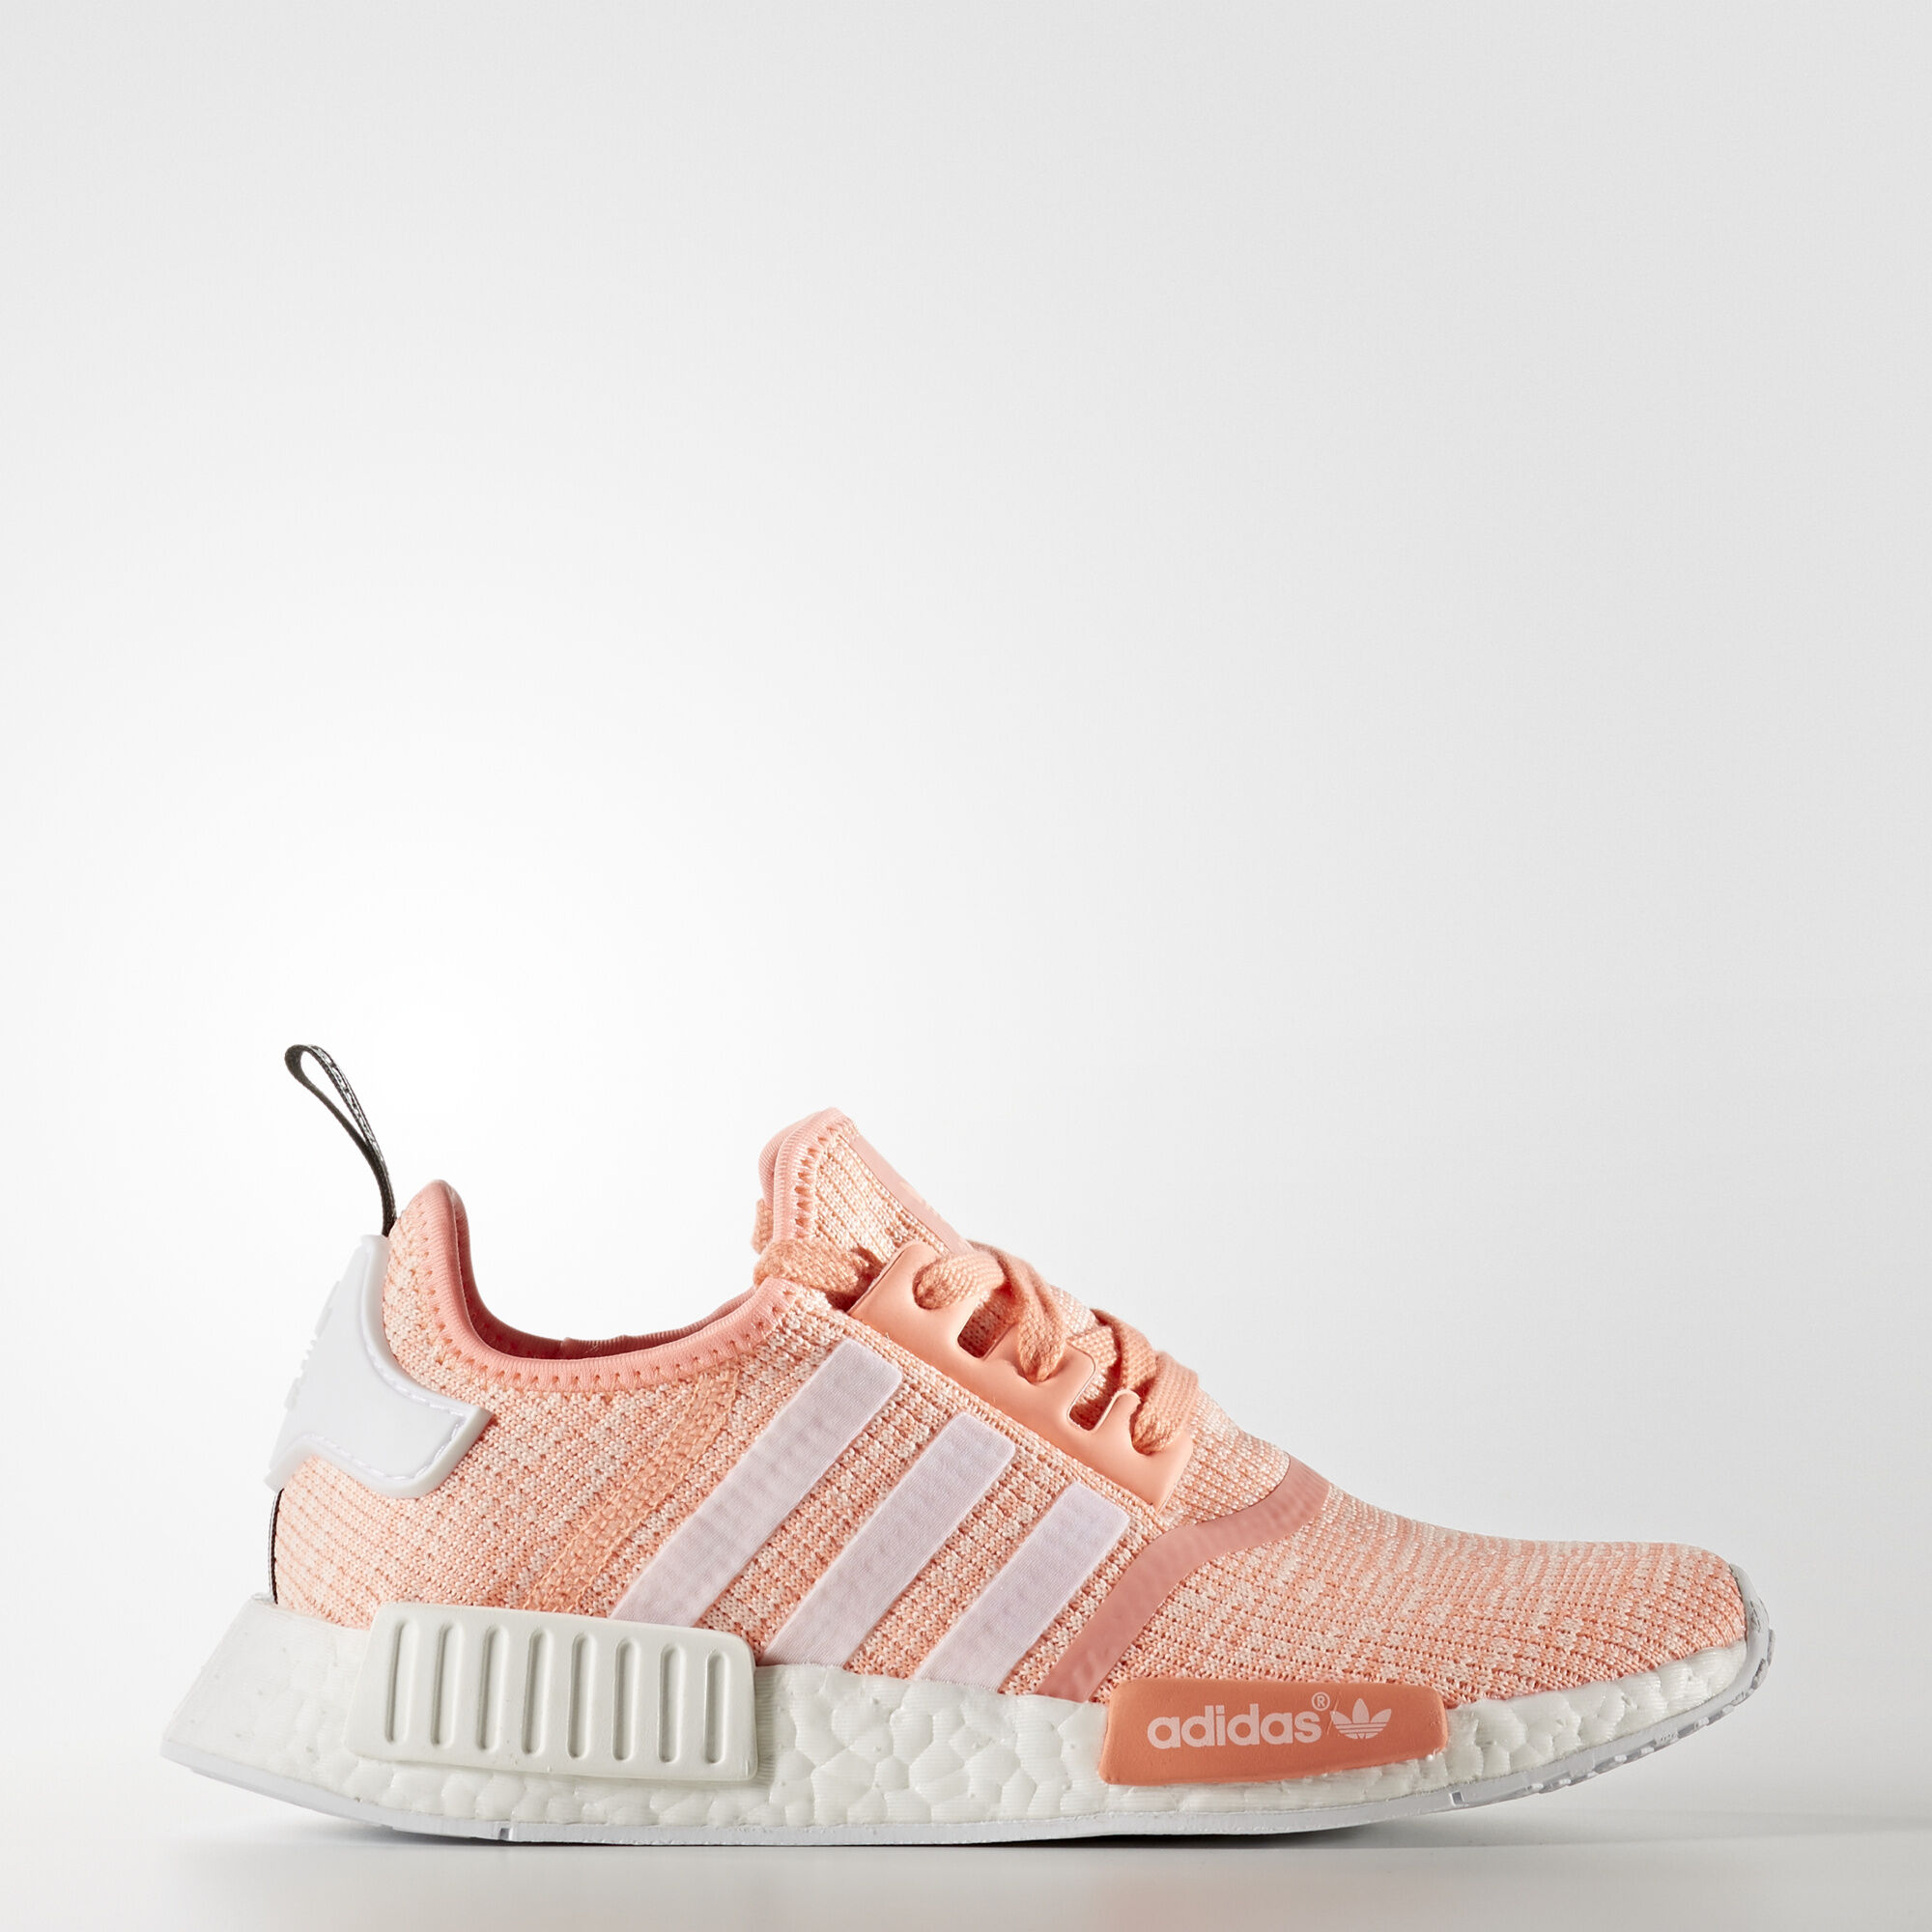 brand new 9ab8b 8efac adidas - NMD R1 Shoes Sun Glow Footwear White Haze Coral BY3034. Women  Originals